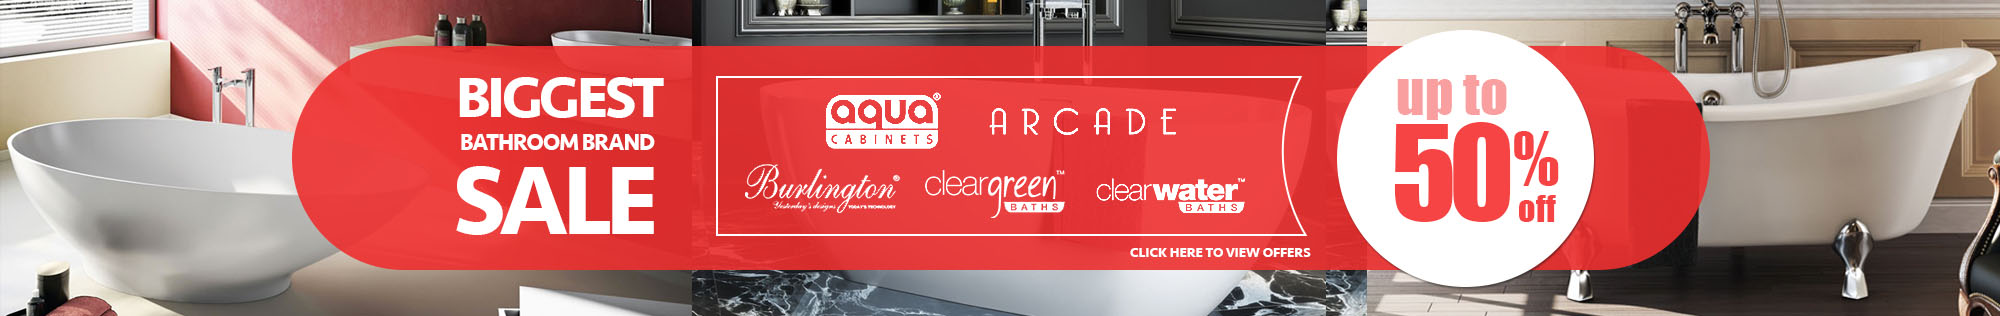 The Biggest Bathroom Brand Sale -  Save up to 50% on Aquacabinets, Arcade, Burlington, Cleargreen and Clearwater